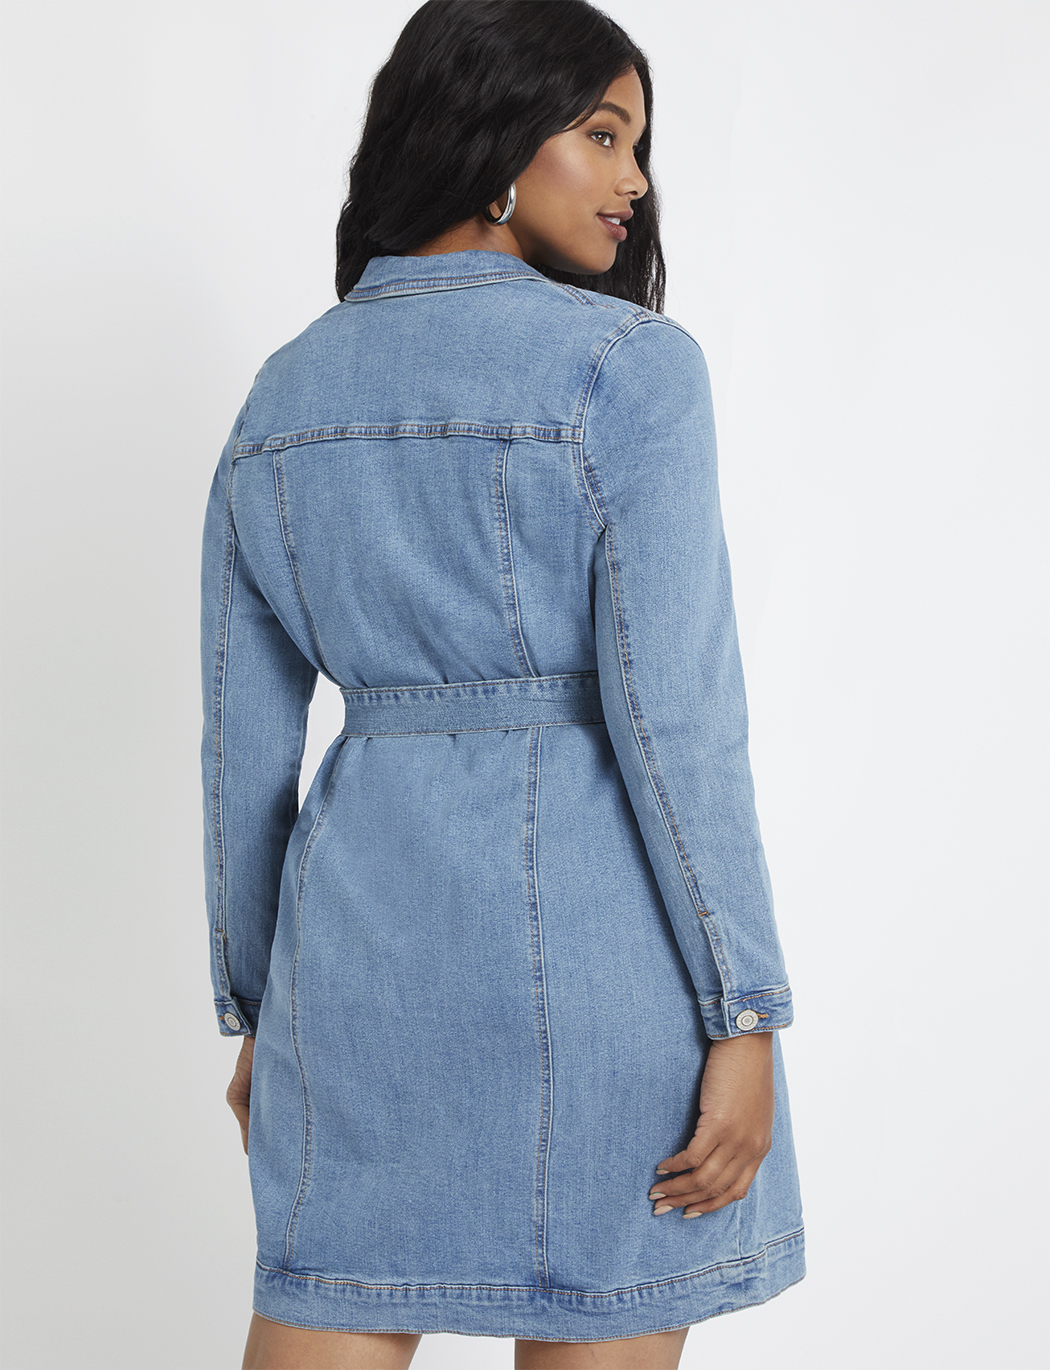 Denim Jacket Dress